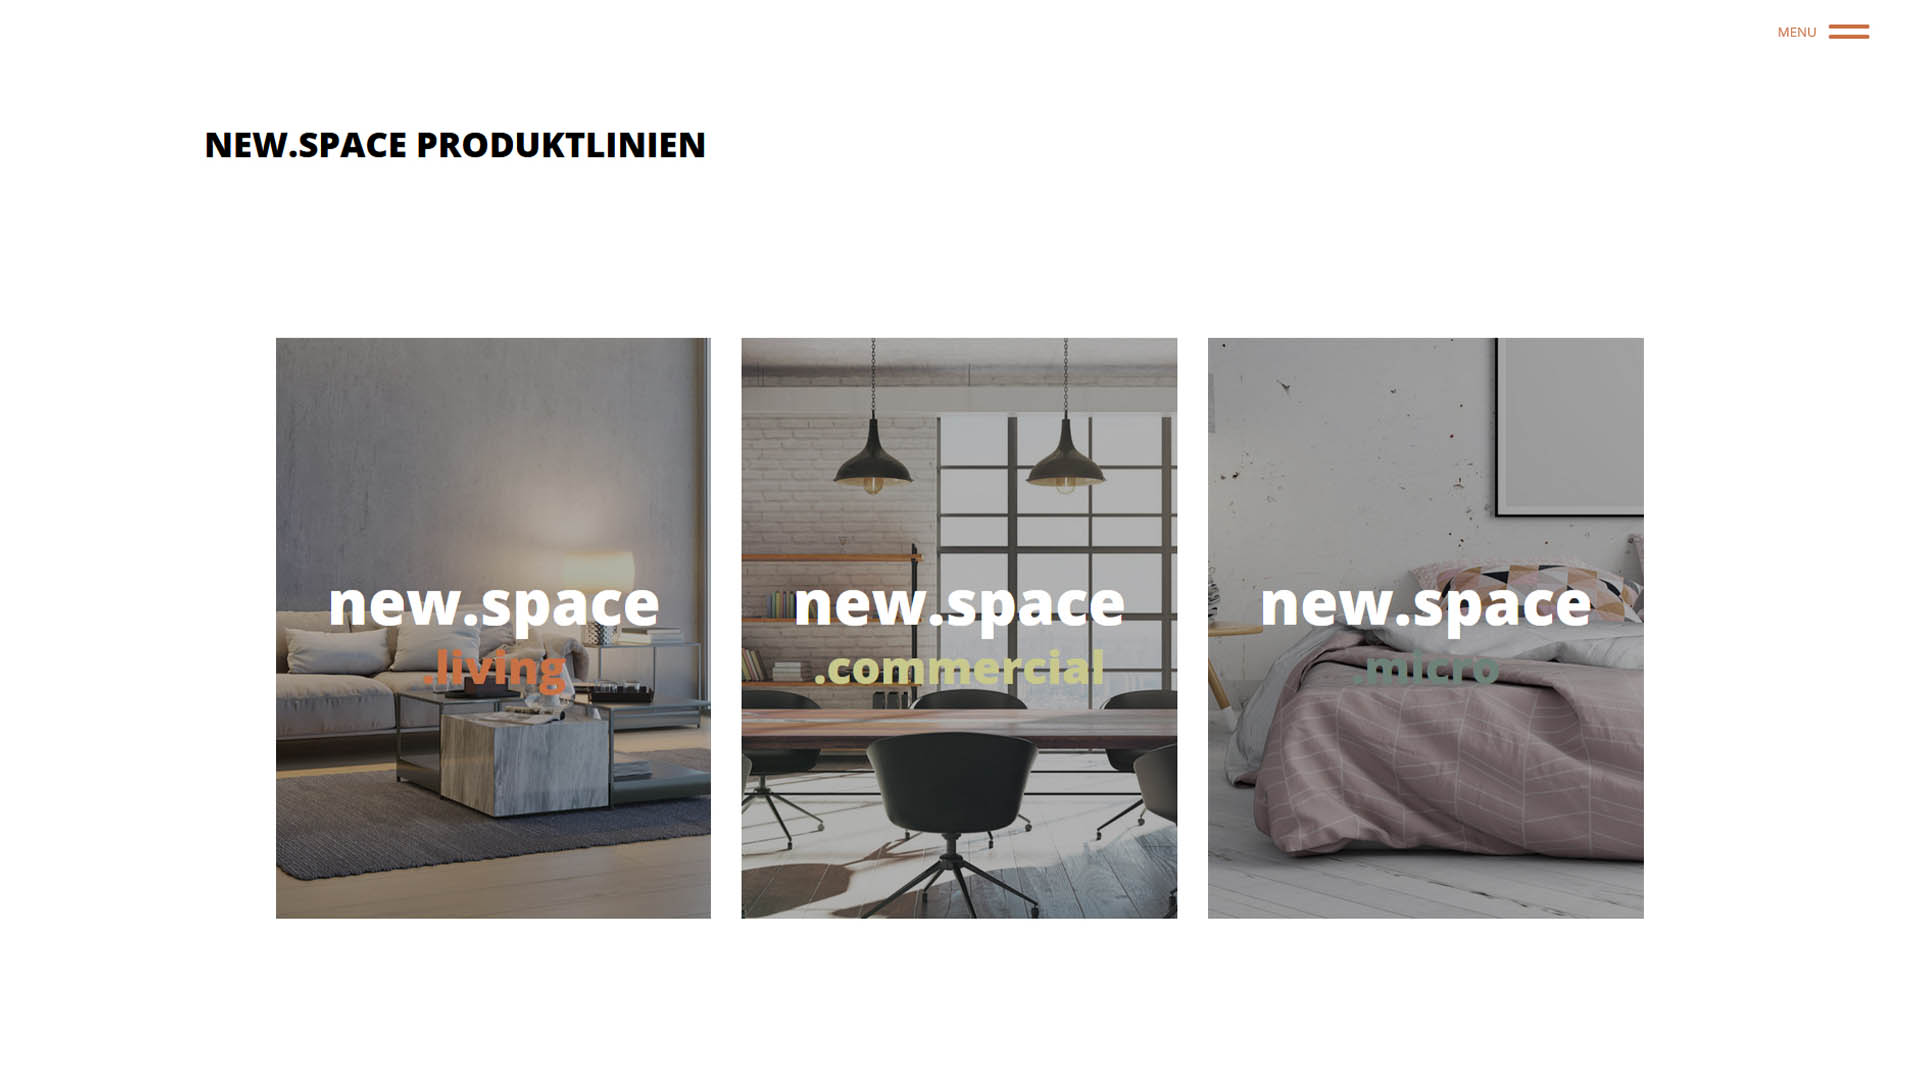 Immobilienmarketing new.space Webseite